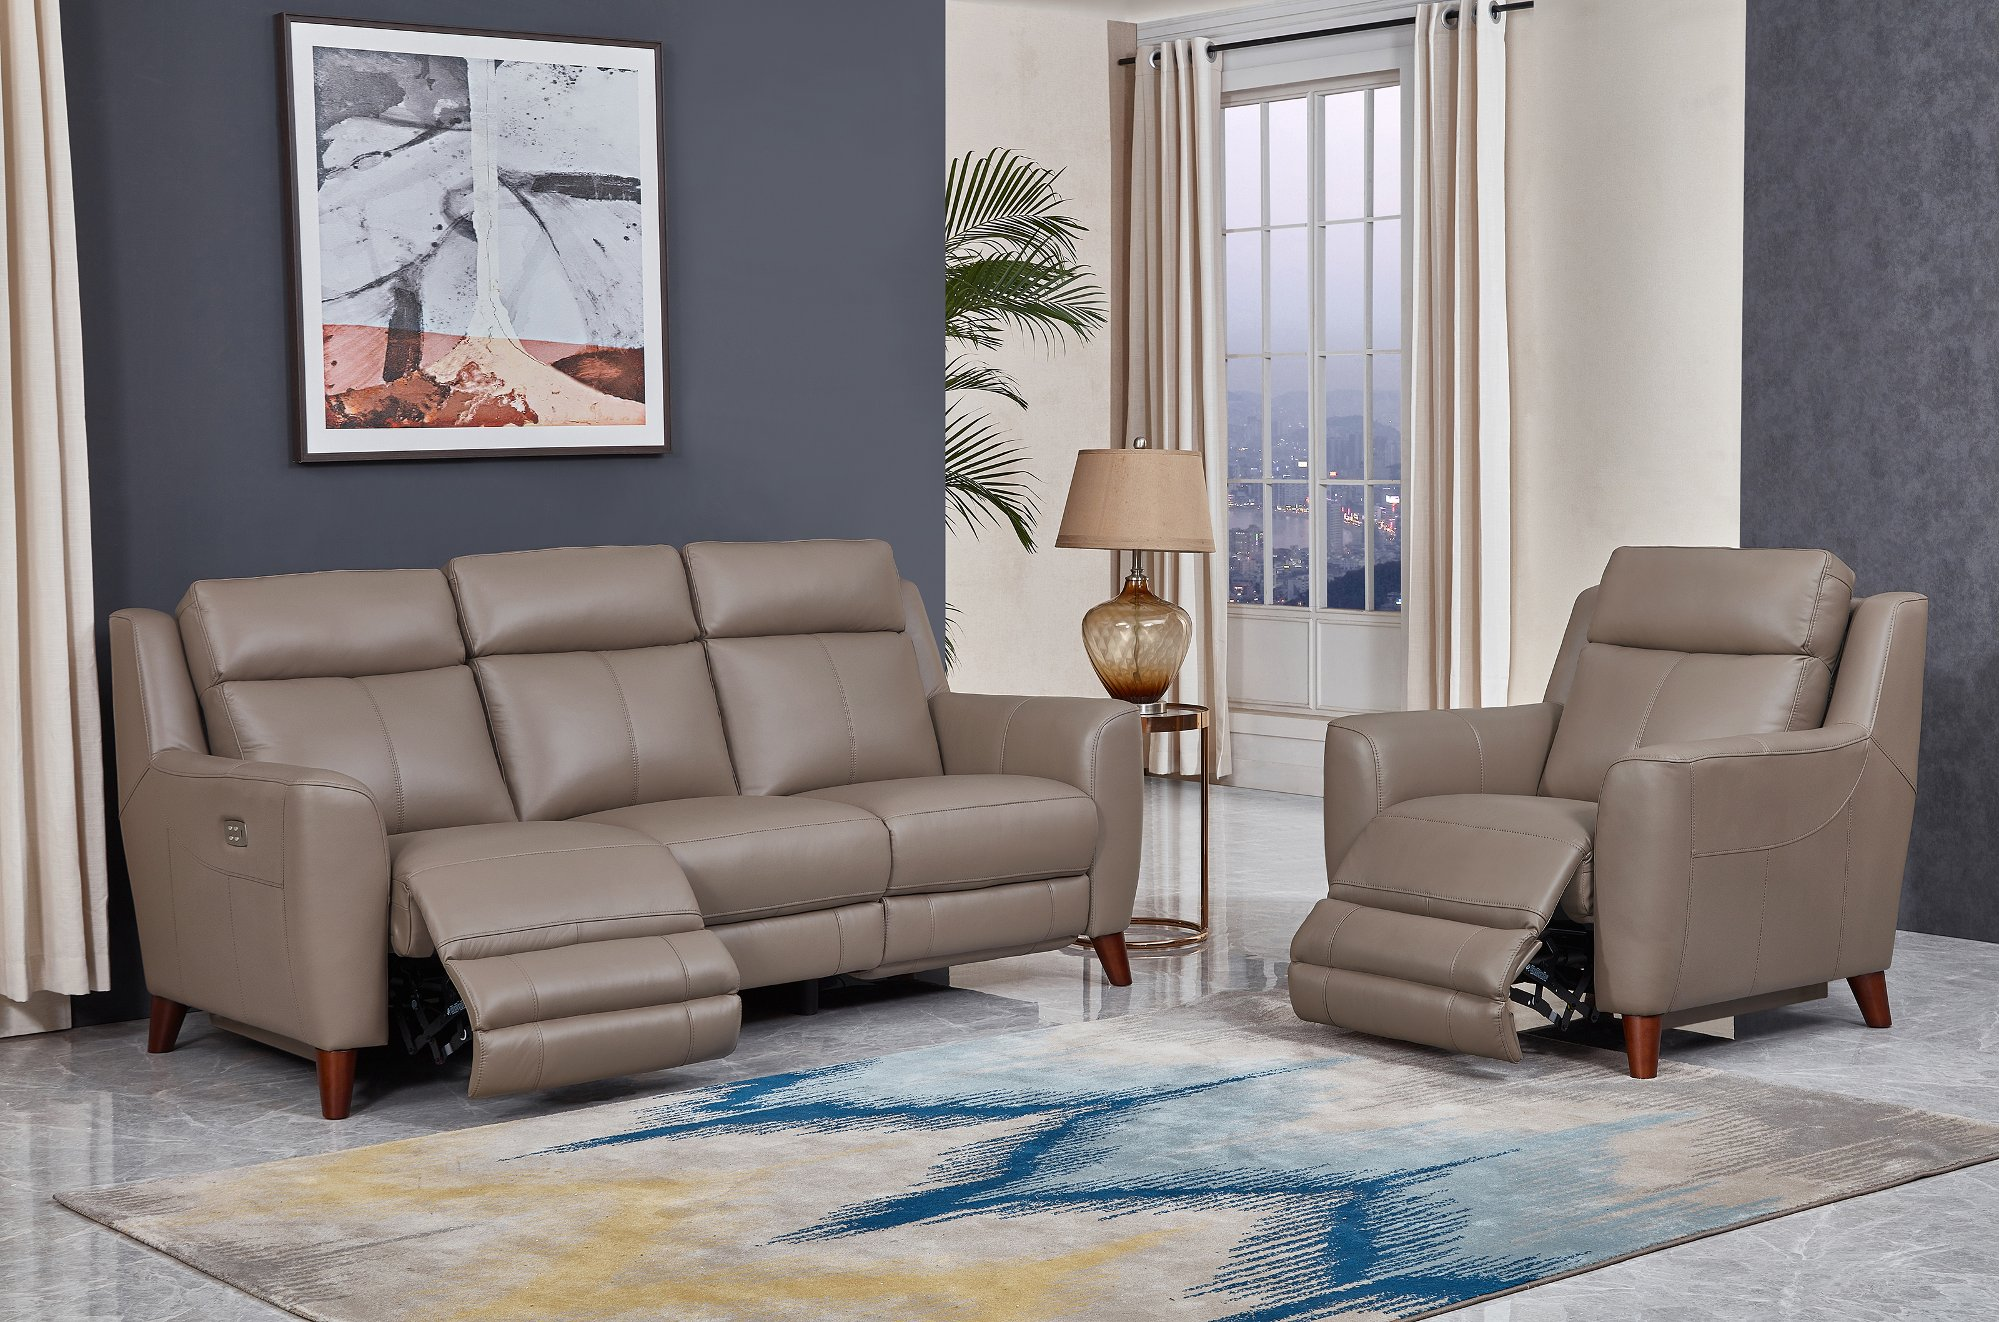 Must Have Taupe Leather Power Reclining Sofa And Loveseat Set Fresno From Amax Leather Inc Accuweather Shop